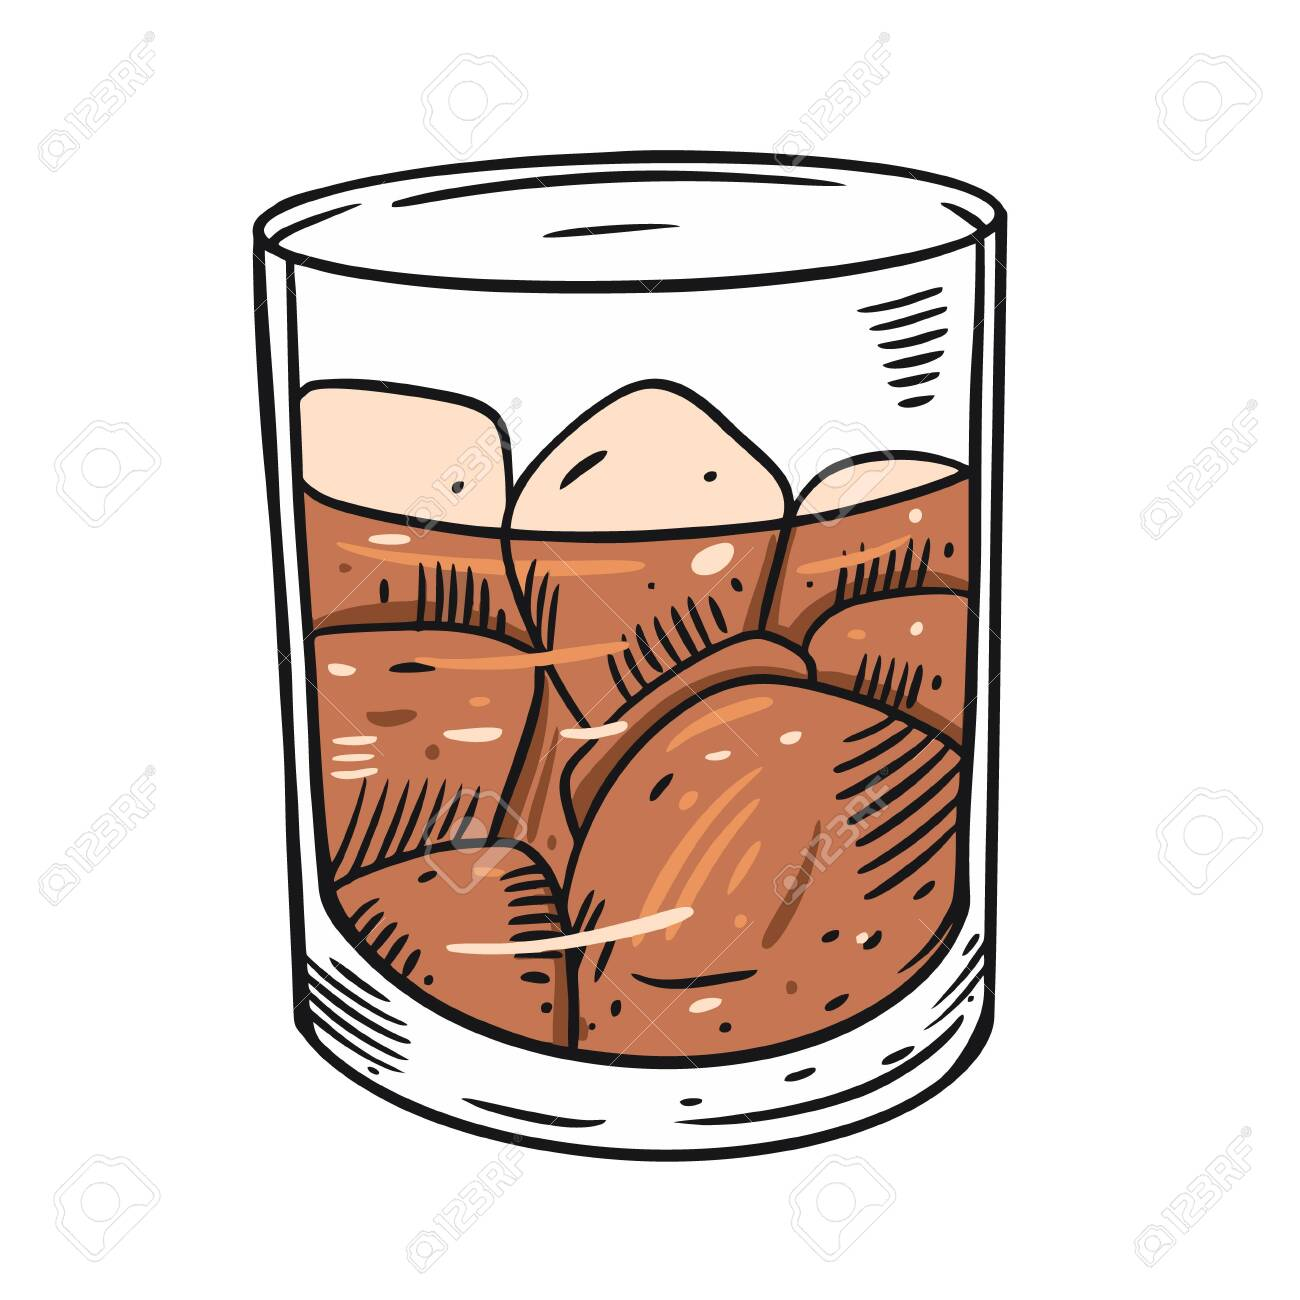 Whiskey in a glass. Cartoon flat vector illustration. Isolated on white background. Design for sign, template, banner, poster, card, t-shirt, blog and web. - 143208891